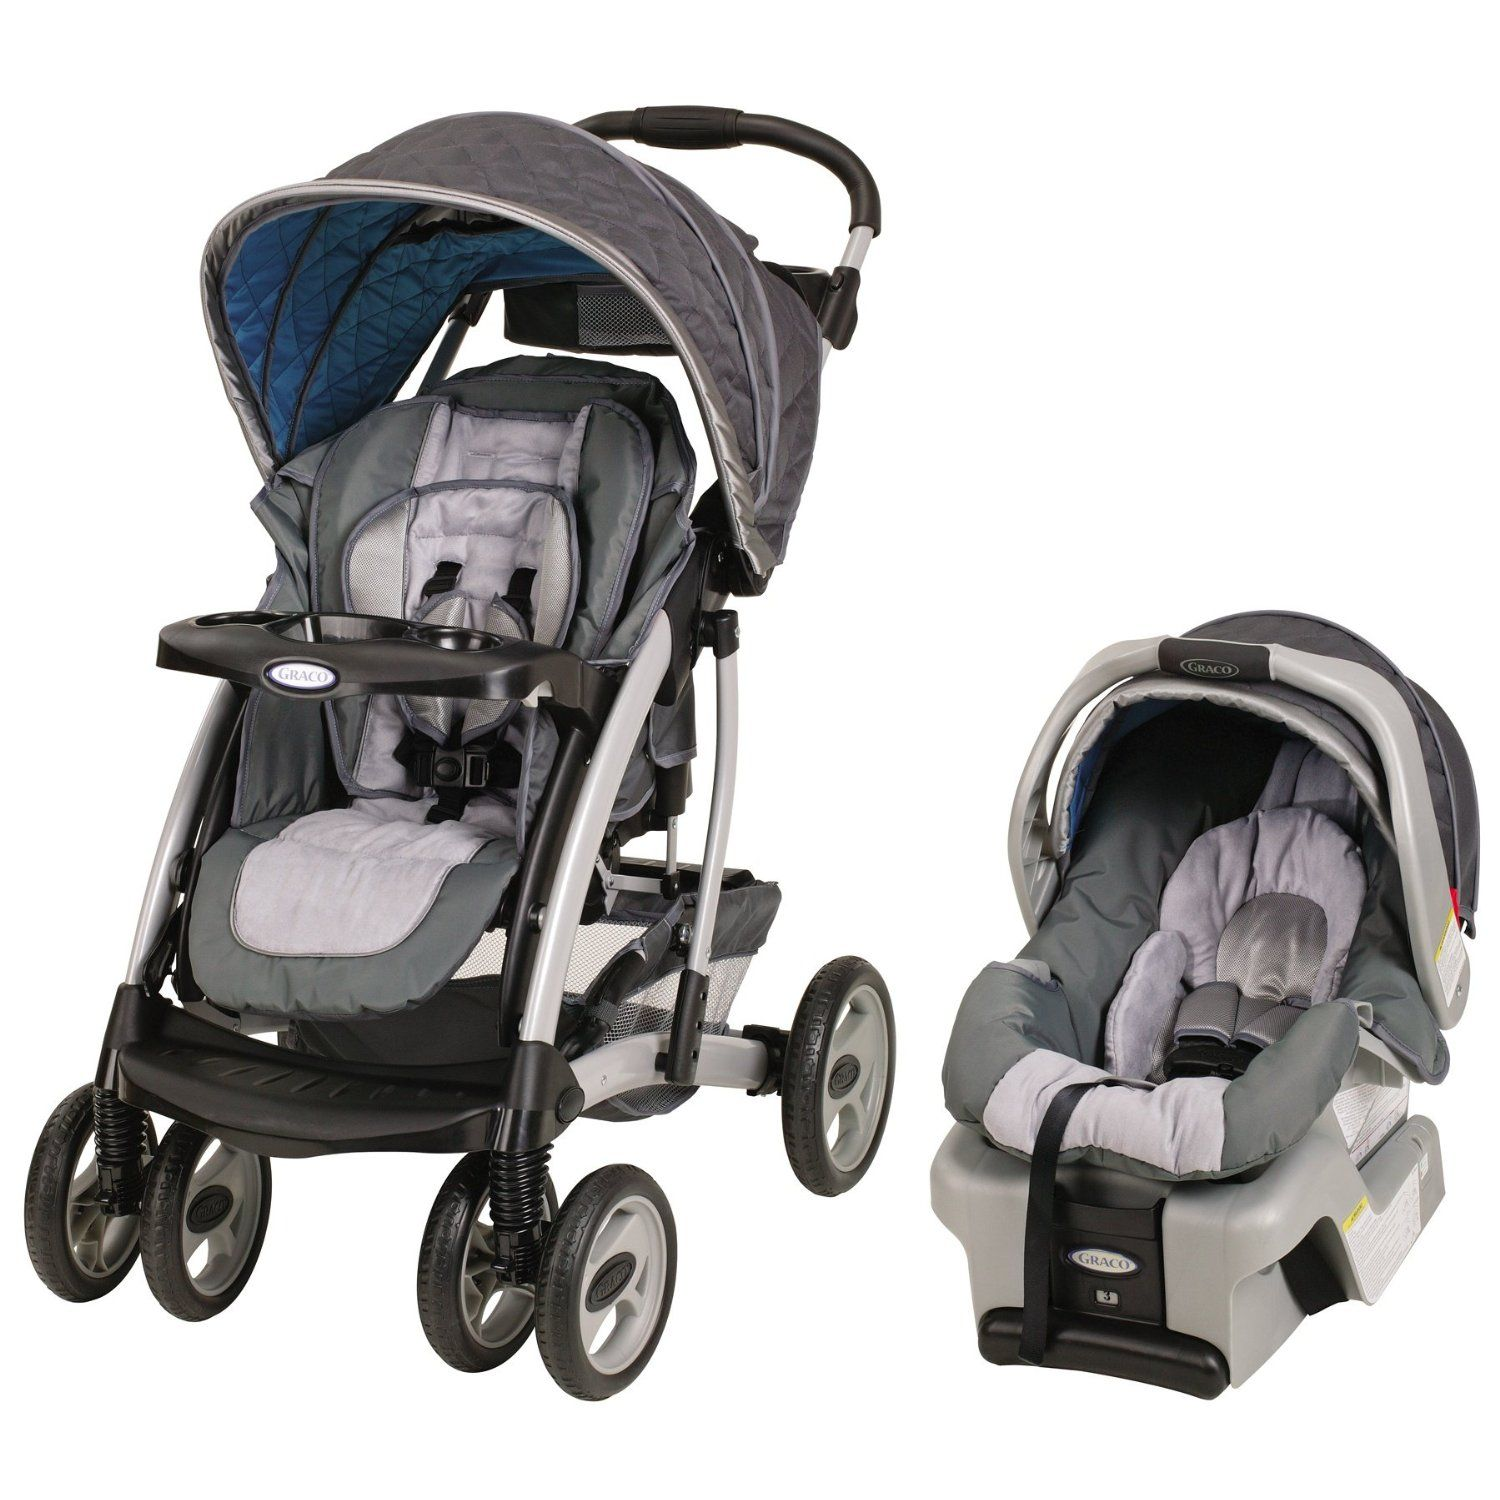 Baby Stroller Travel Systems. Graco Quattro Tour Reverse